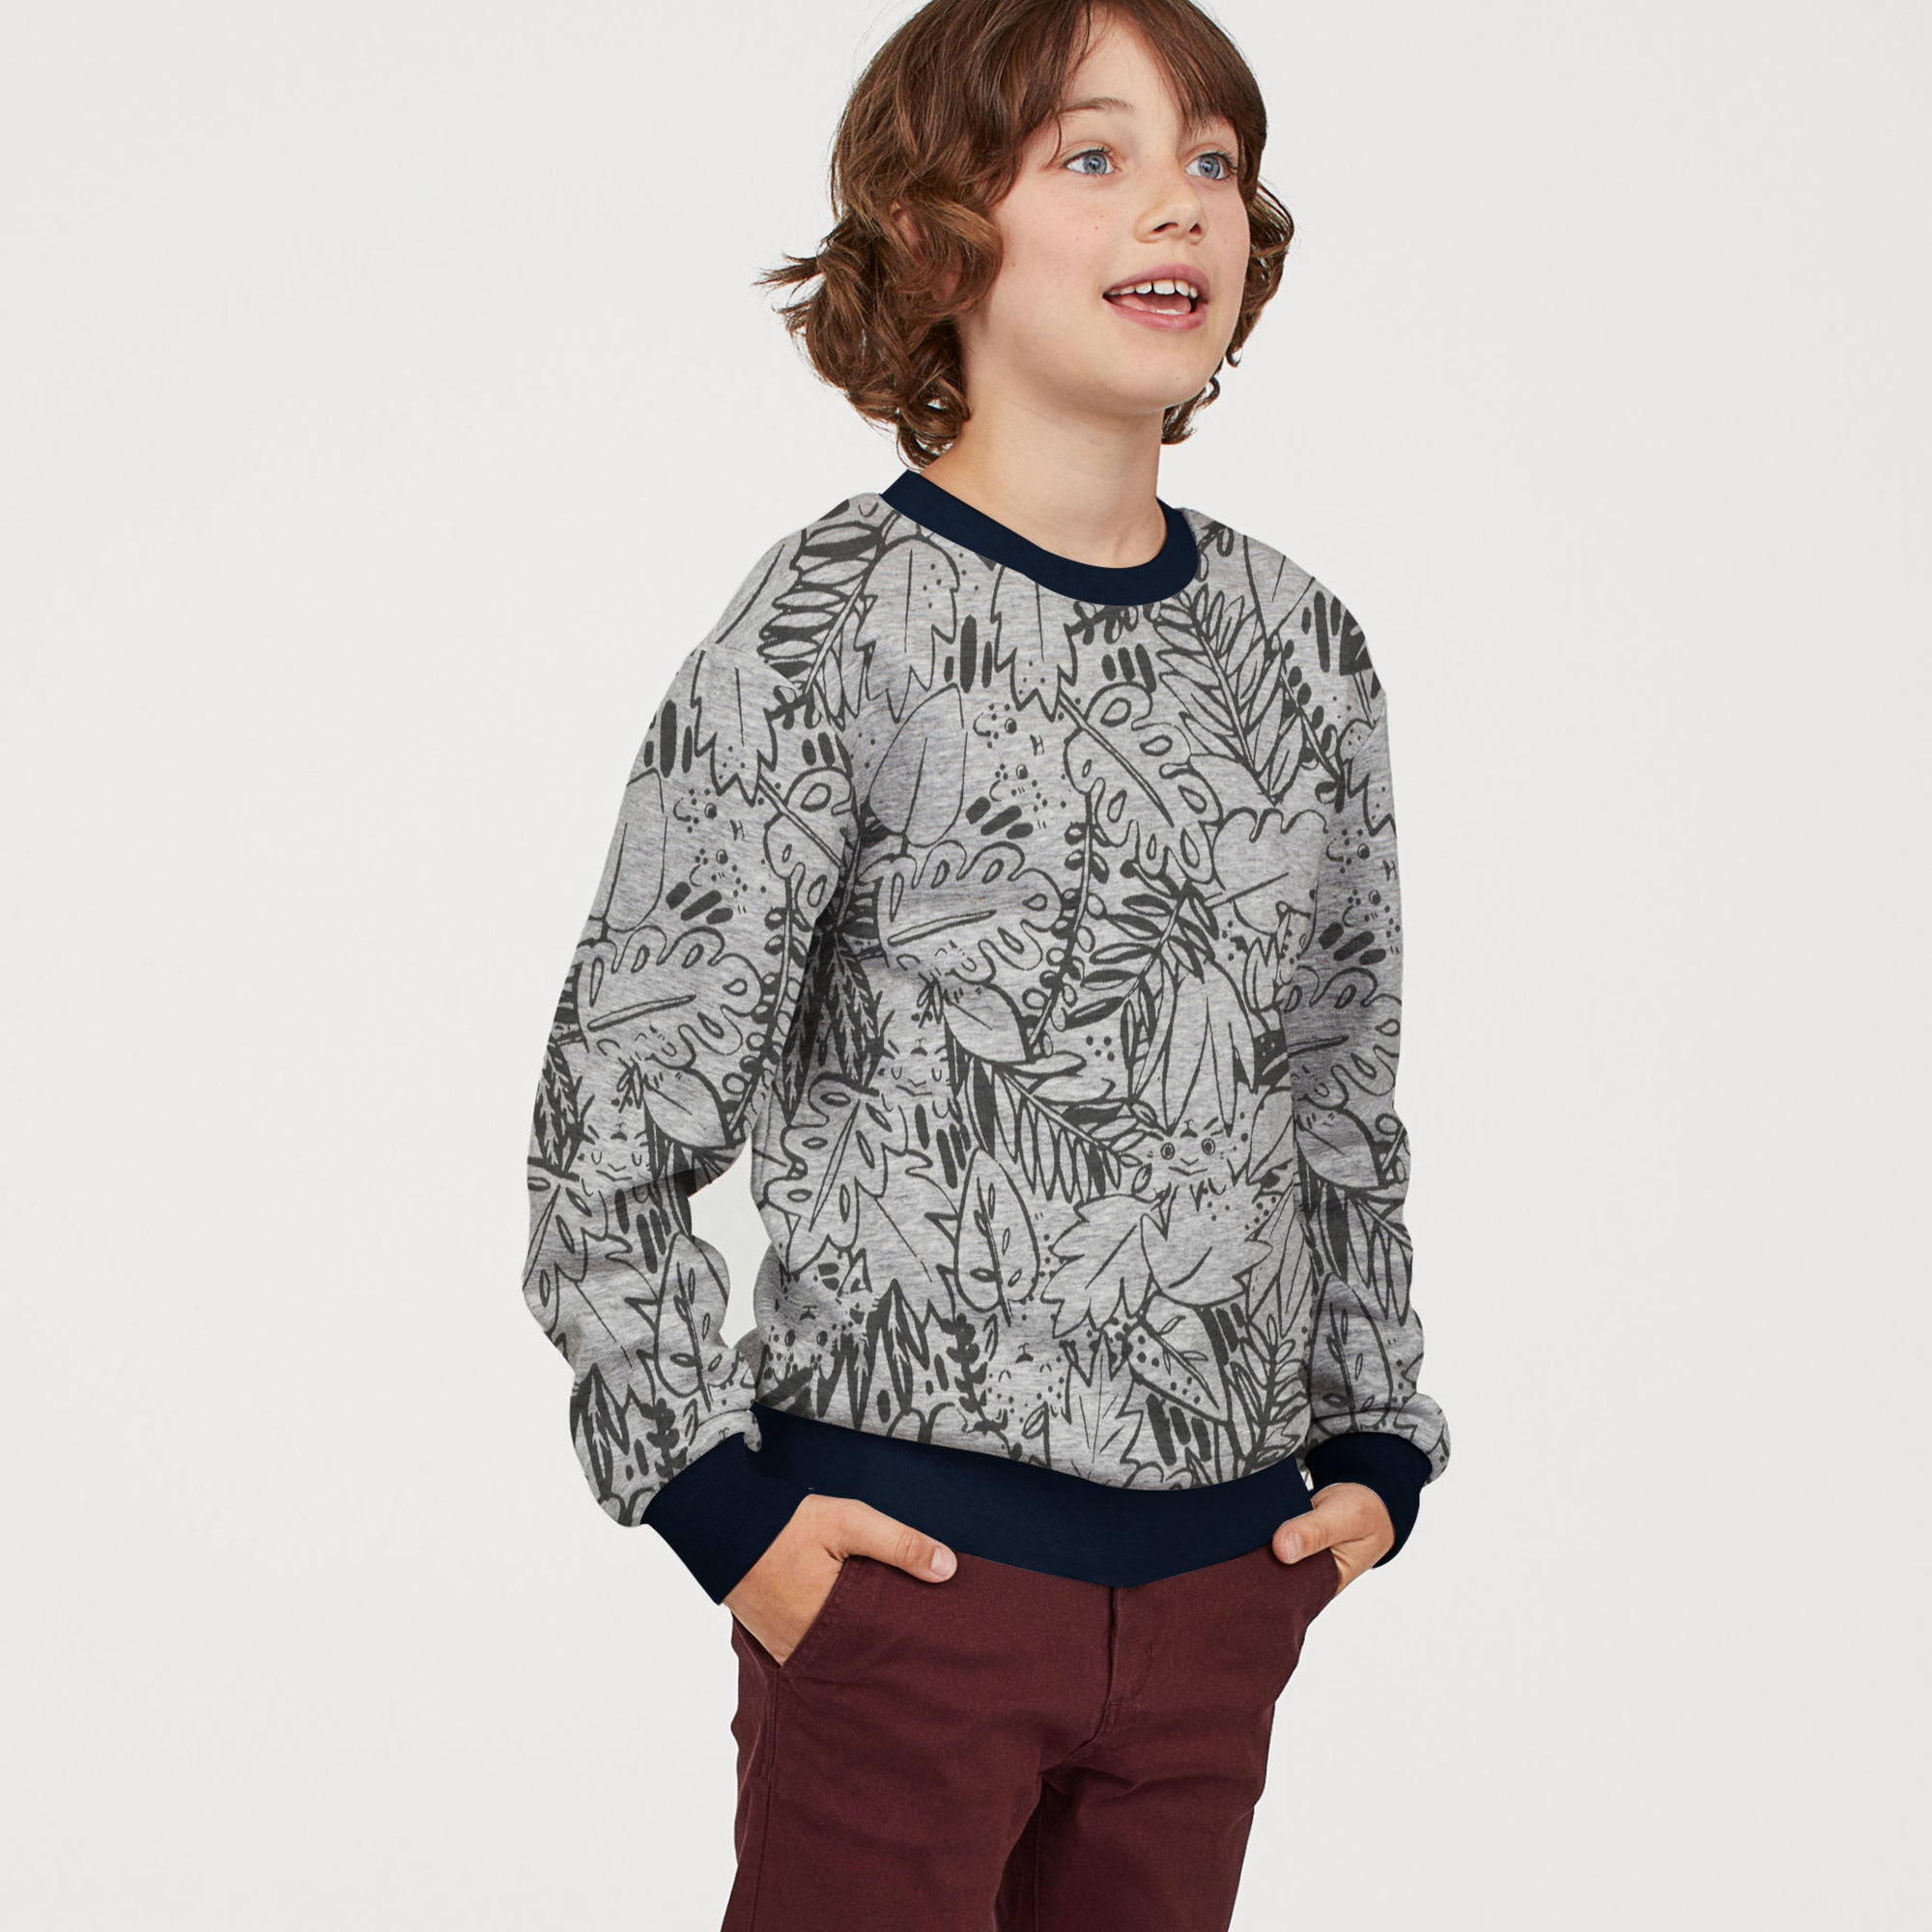 Tommy Hilfiger Fleece Crew Neck Sweatshirt For Kids-Grey With Allover Print-SP1377